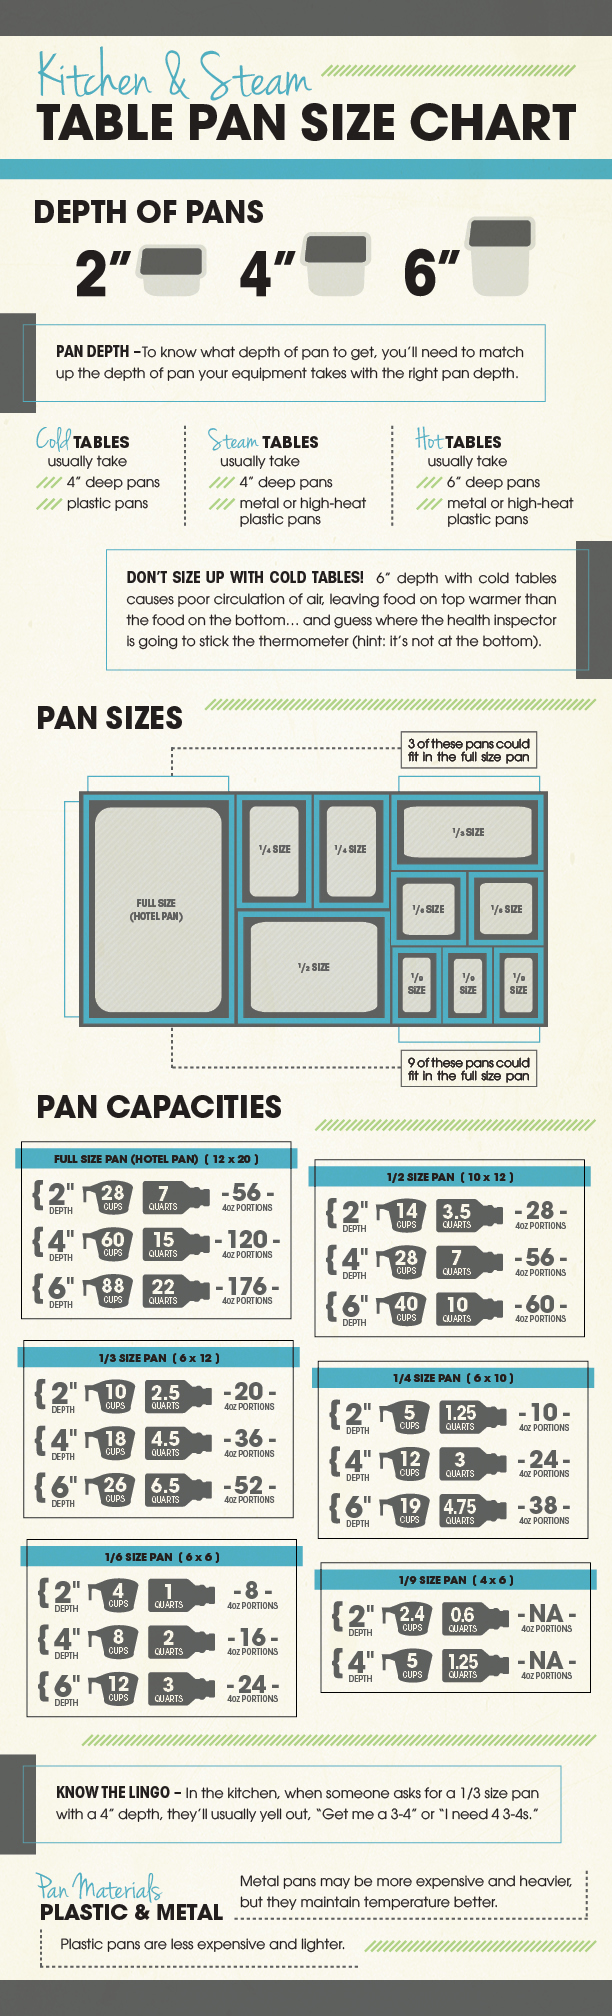 Kitchen Steam Table Pan Size Chart Free Download Tundra Restaurant Supply